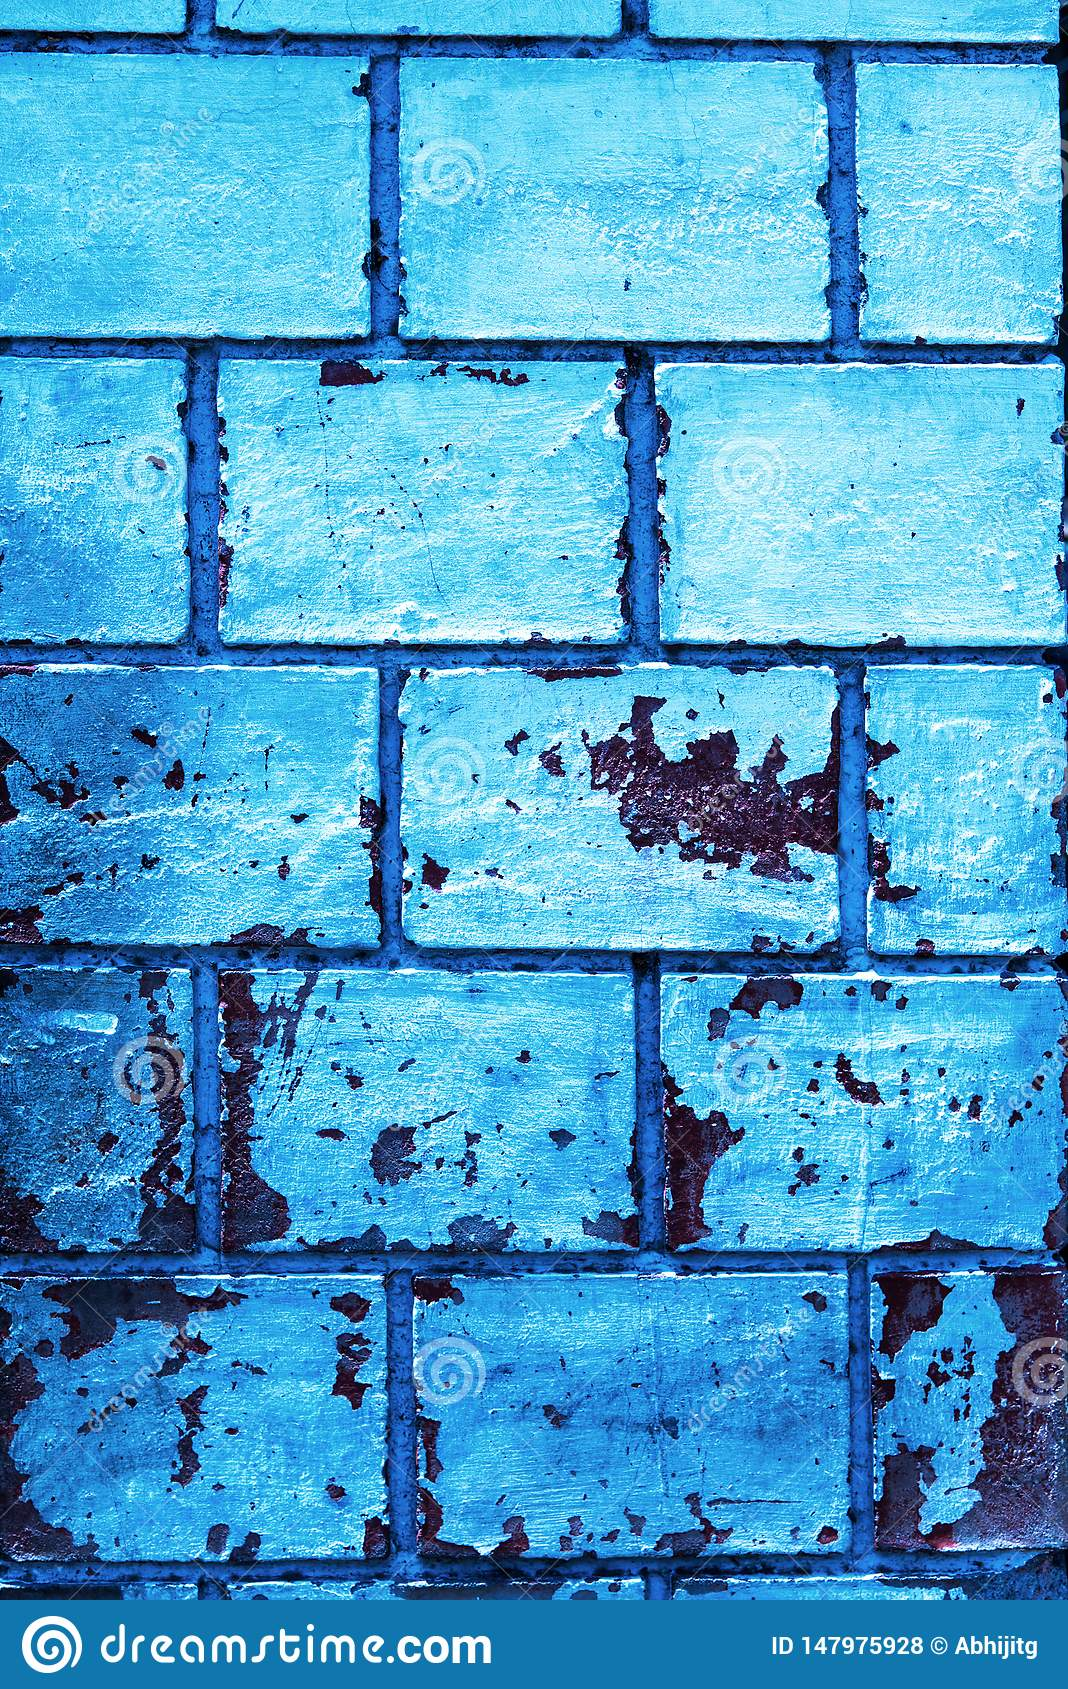 High Resolution Blue Wall Texture For Background 3d Environment Wallpaper Old Wall With Peeling Paint Stock Photo Image Of Block Backgrounds 147975928